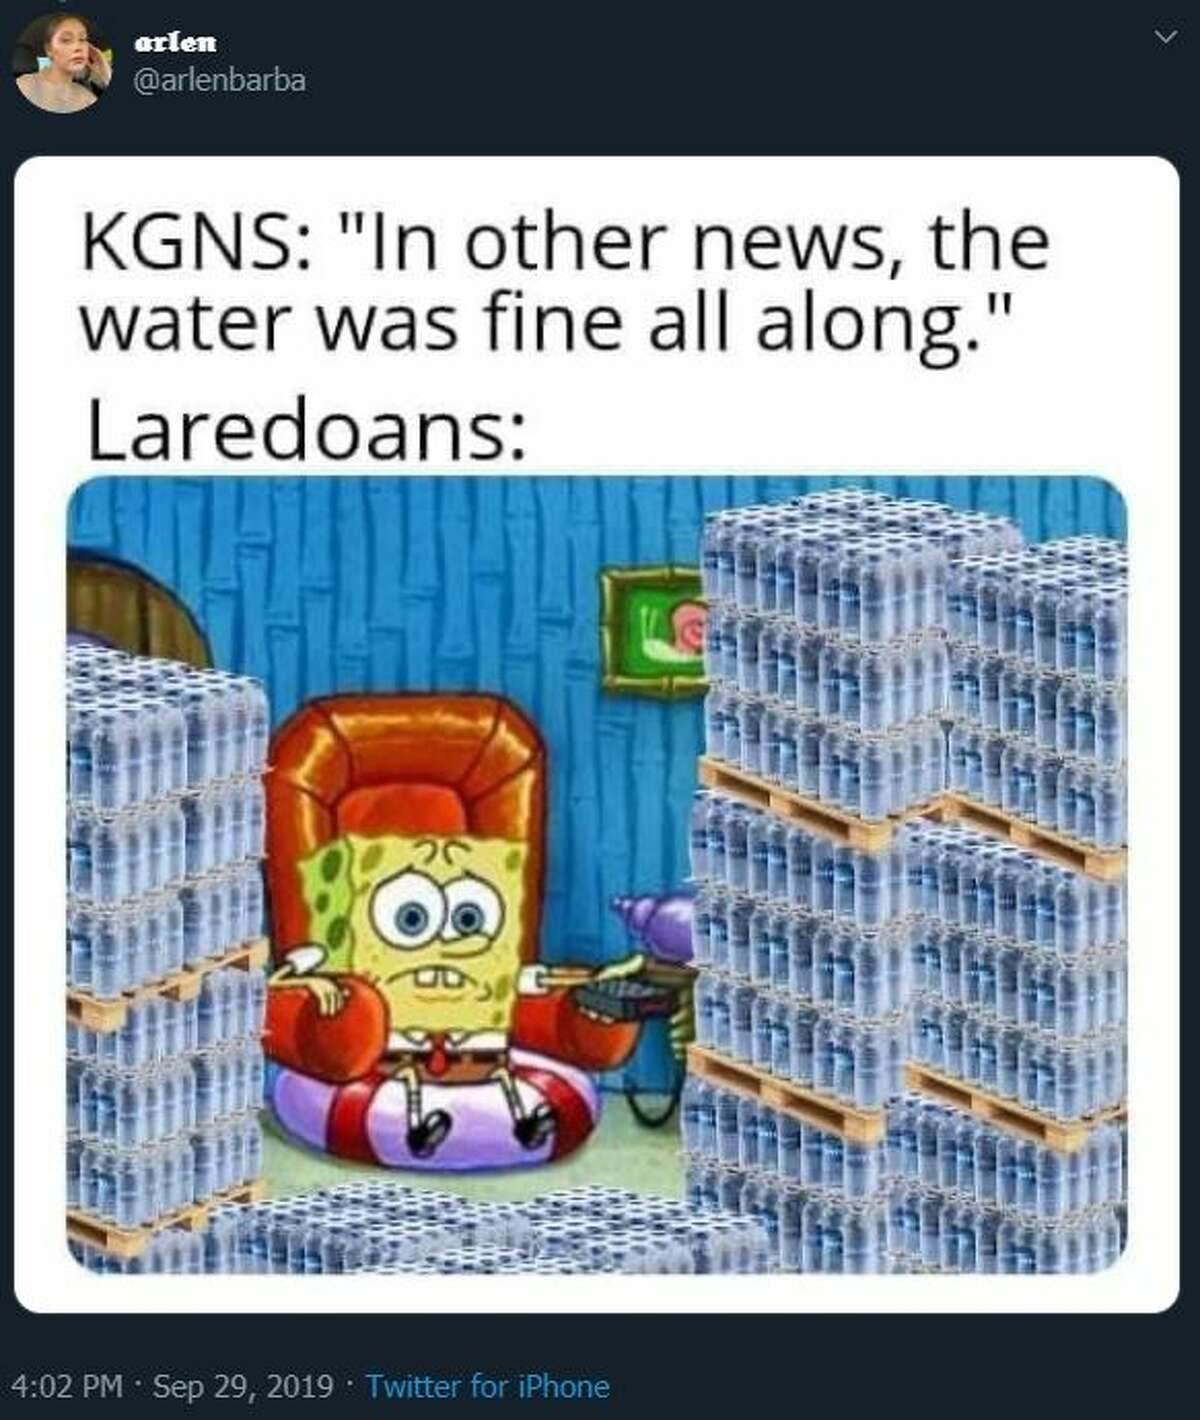 Some locals reacted to the news of the boil water notice affecting Laredo with panic, while others responded jokes and memes making light of the situation.